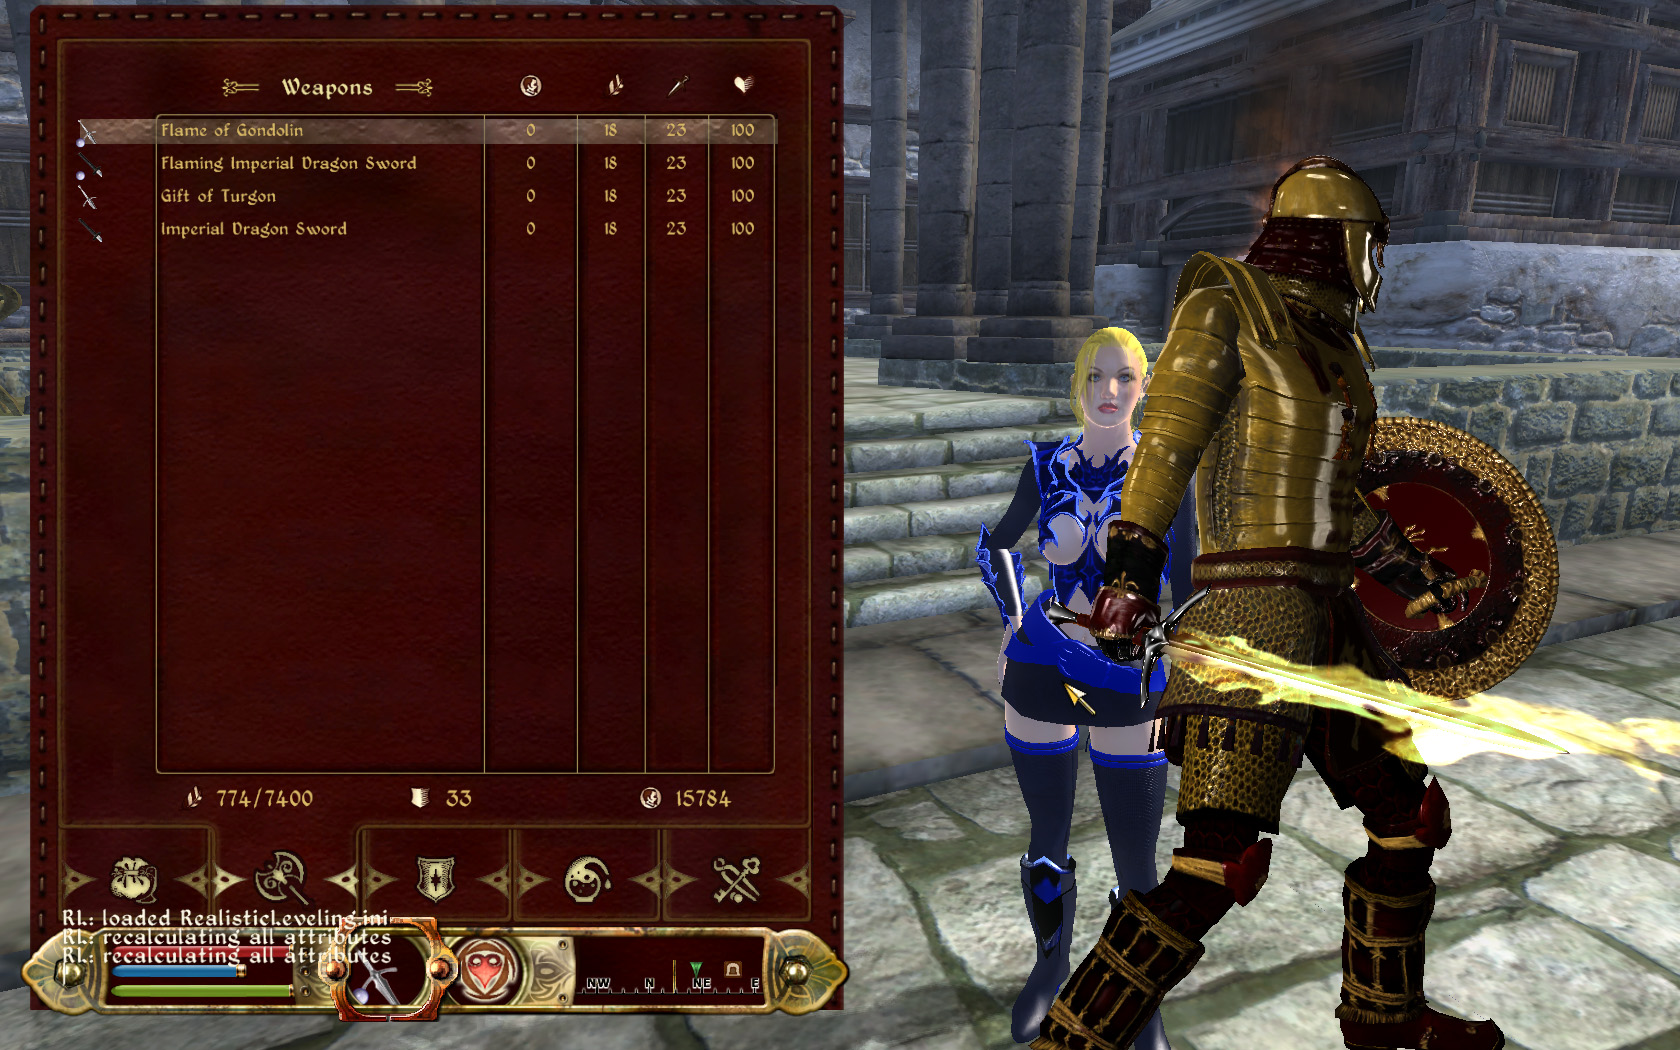 imperial dragon armor replacer at oblivion nexus mods and community